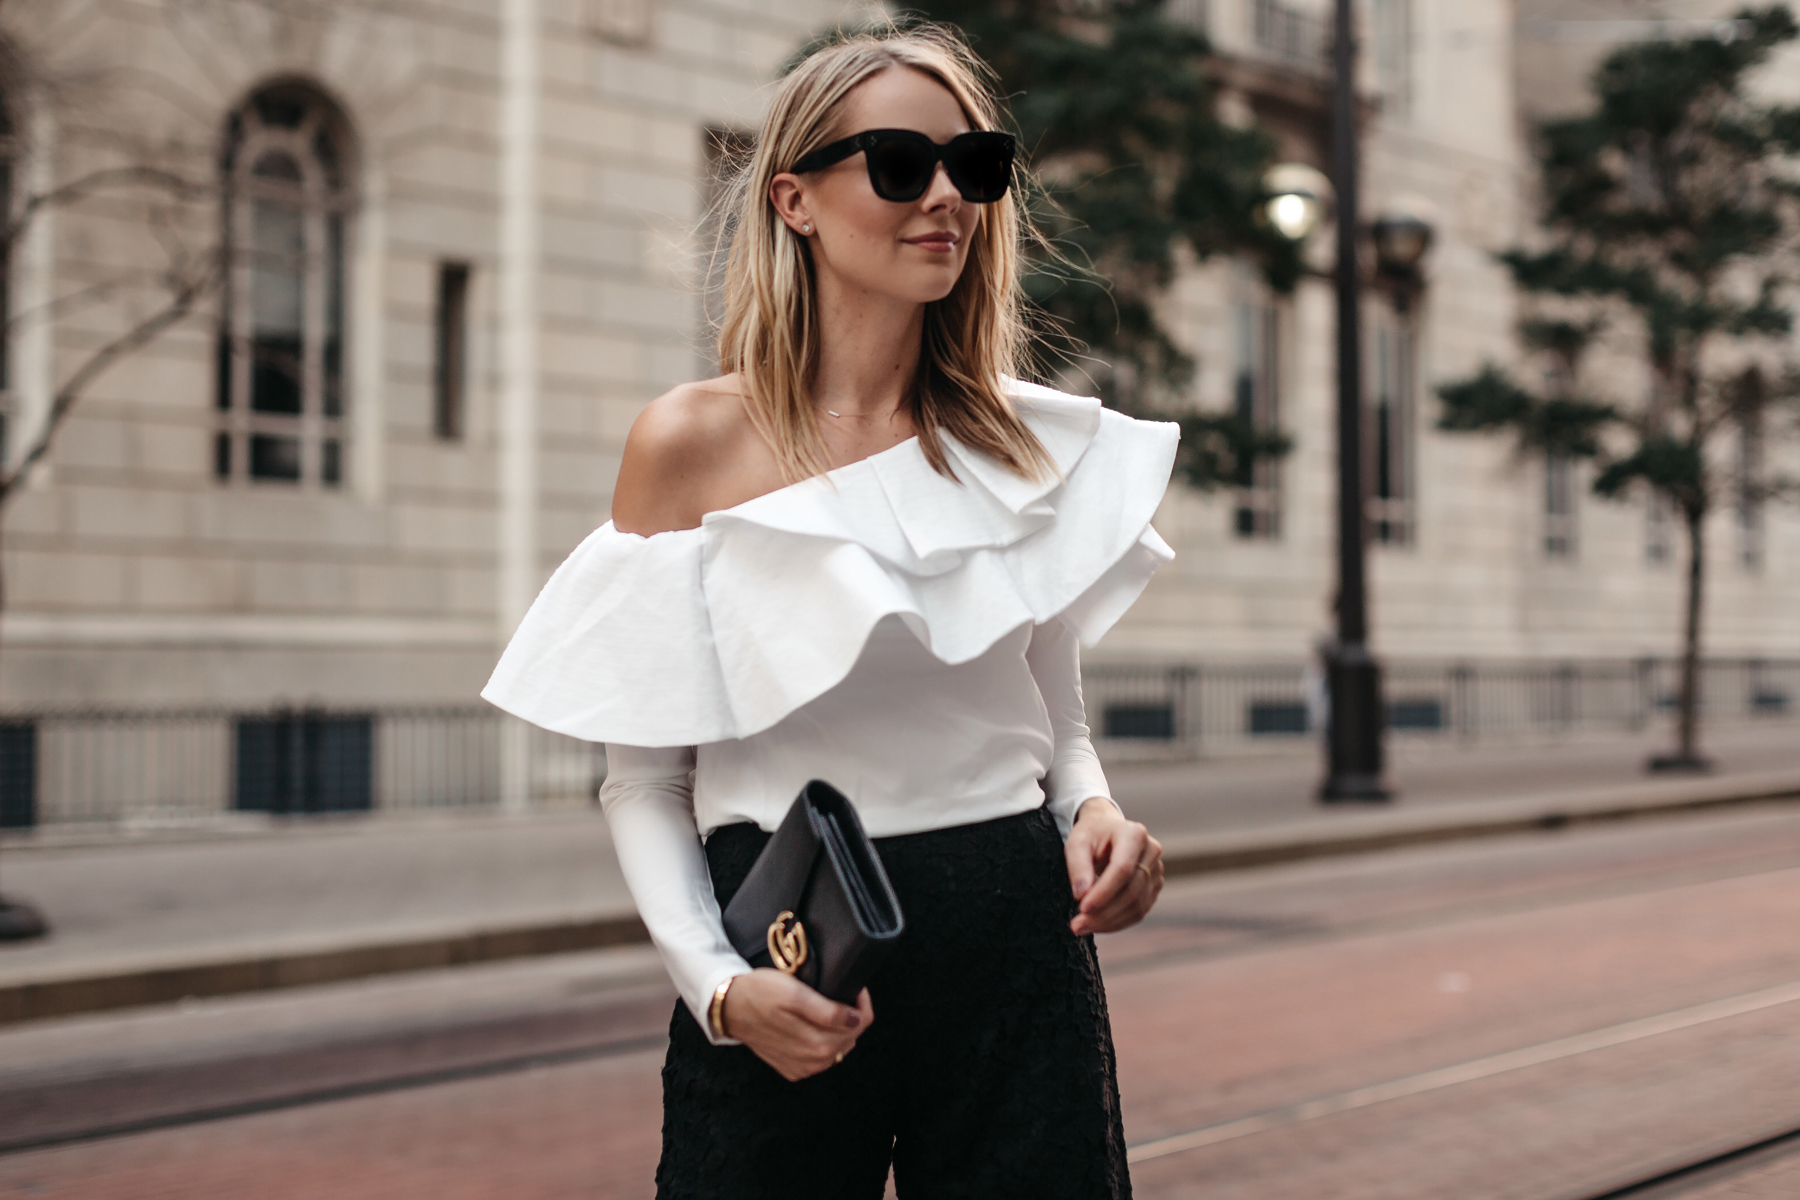 Blonde Woman Wearing White One Shoulder Ruffle Top Fashion Jackson Dallas Blogger Fashion Blogger Street Style